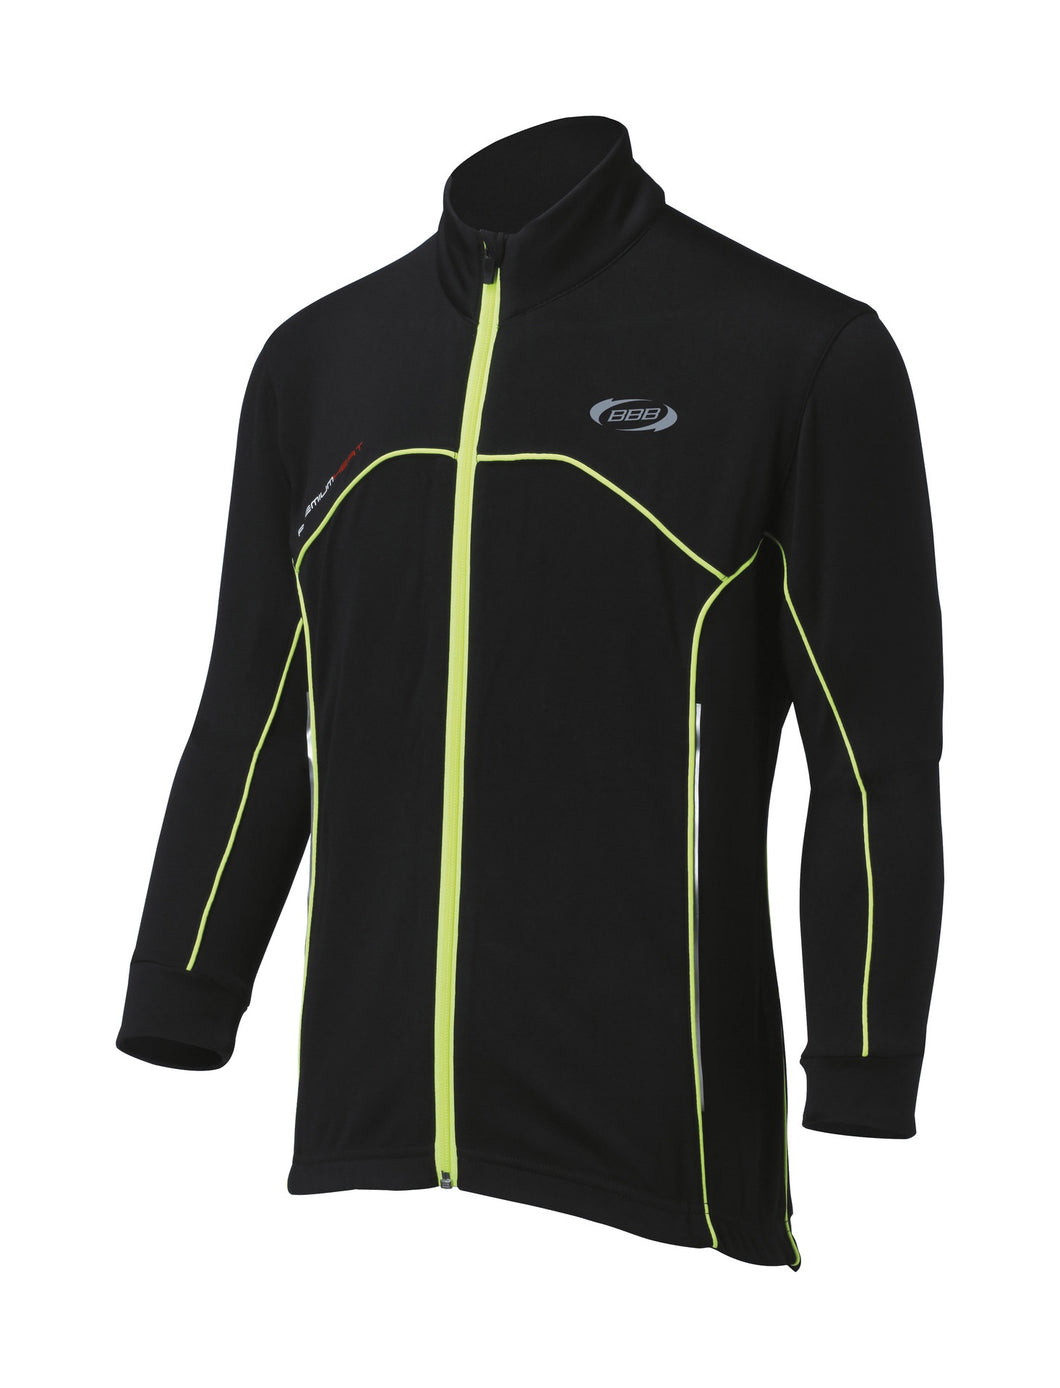 EasyShield Light Jacket (Black & Yellow, M)